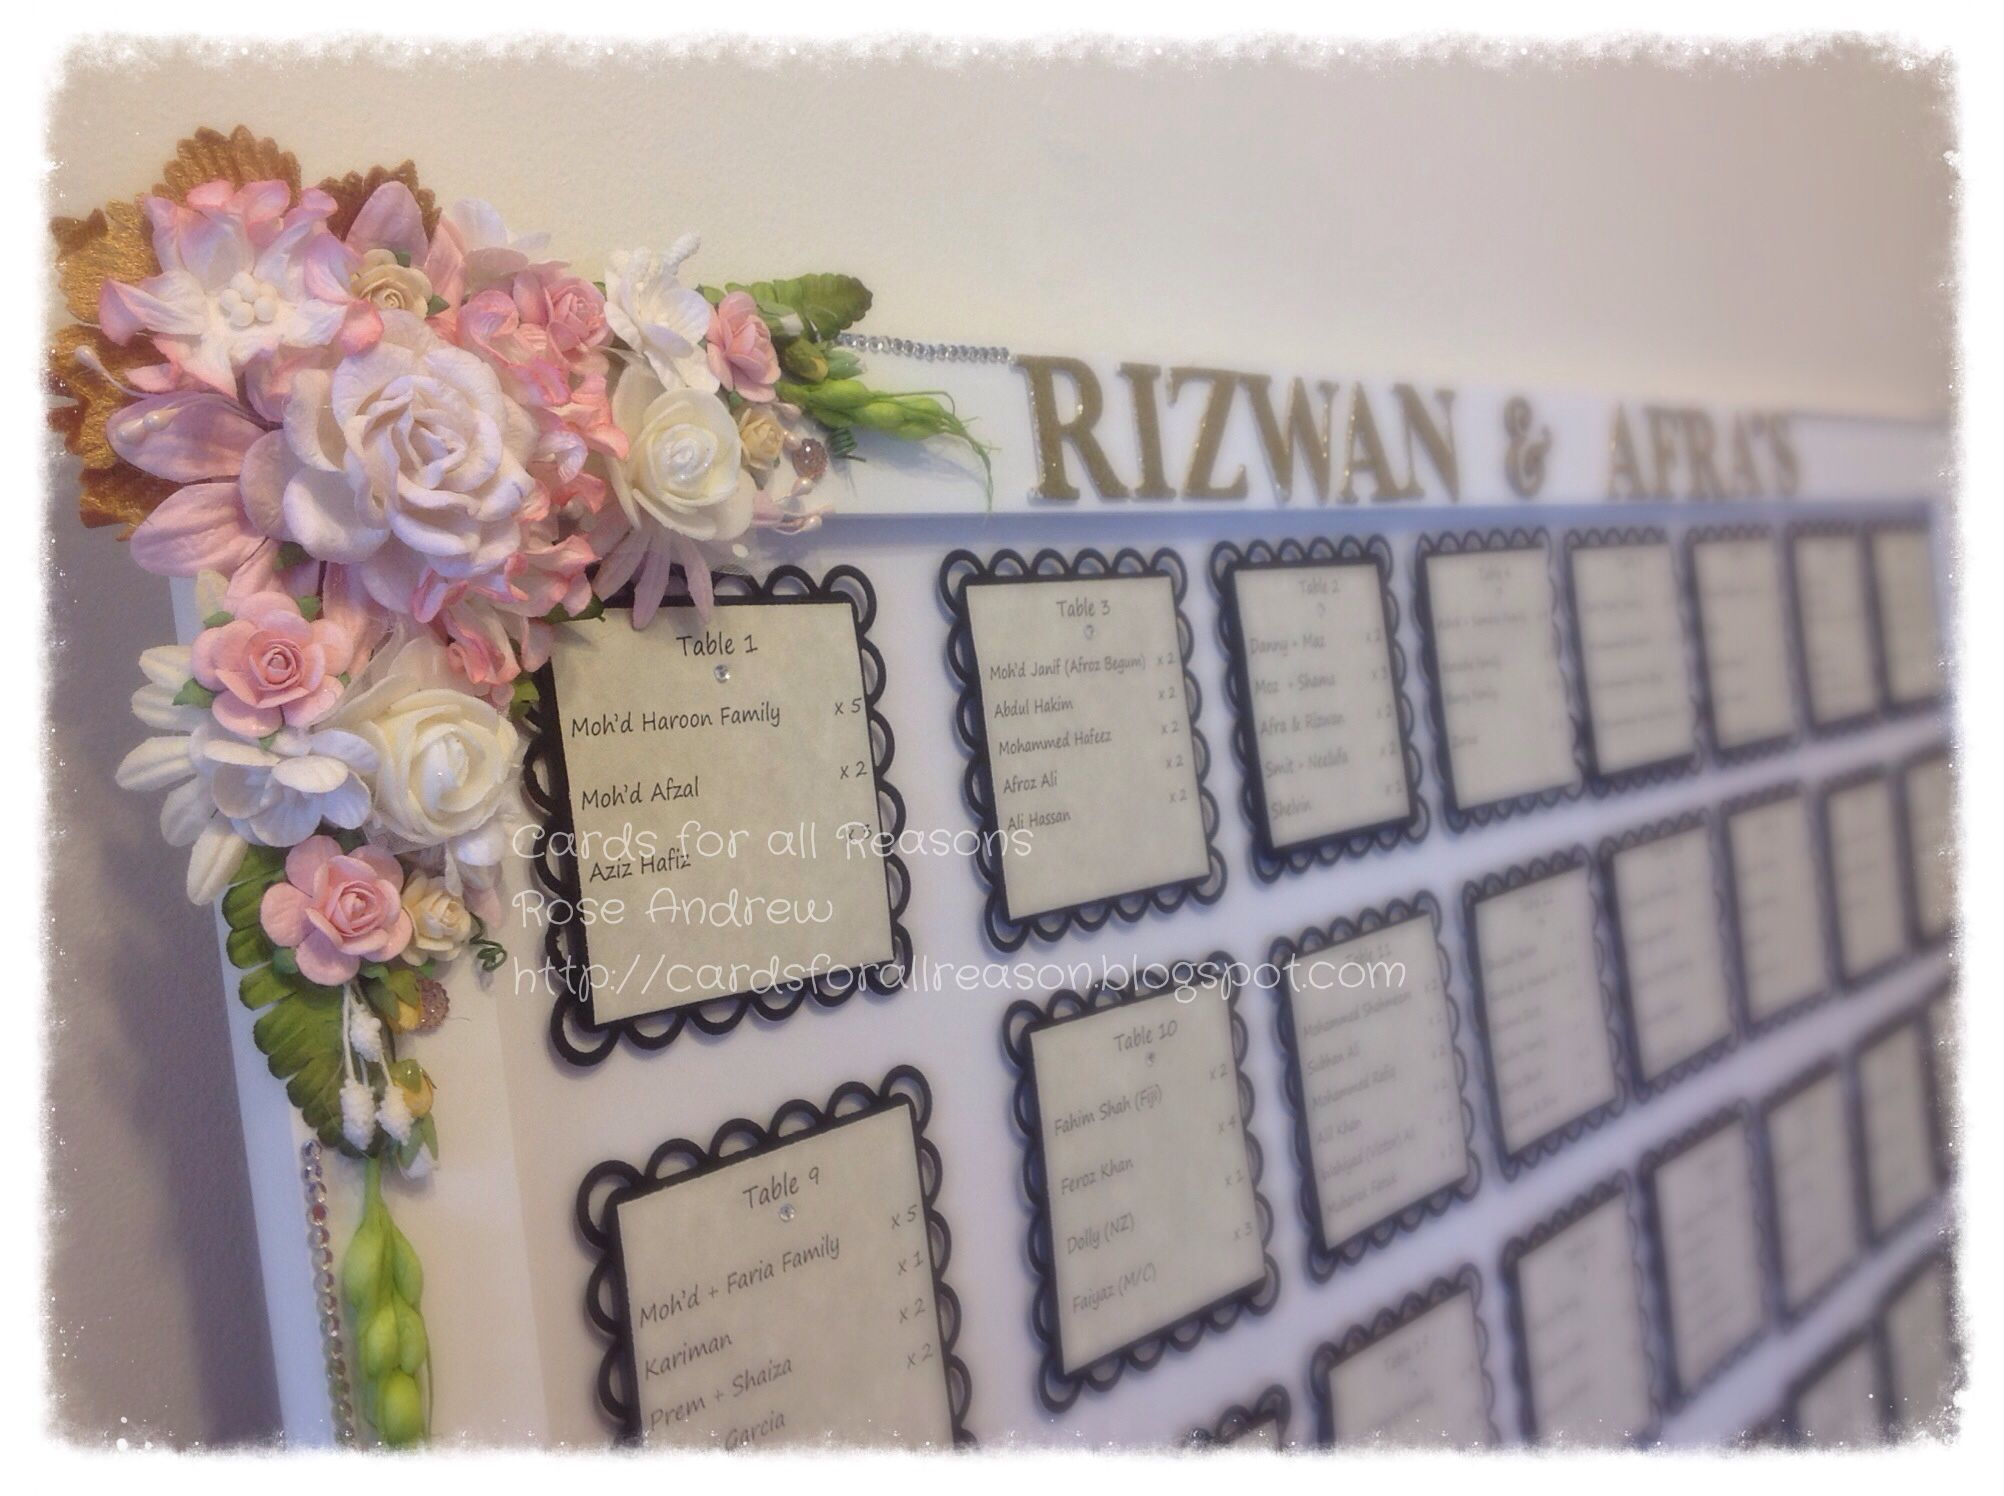 Wedding Guest List Board ...customer order ;)